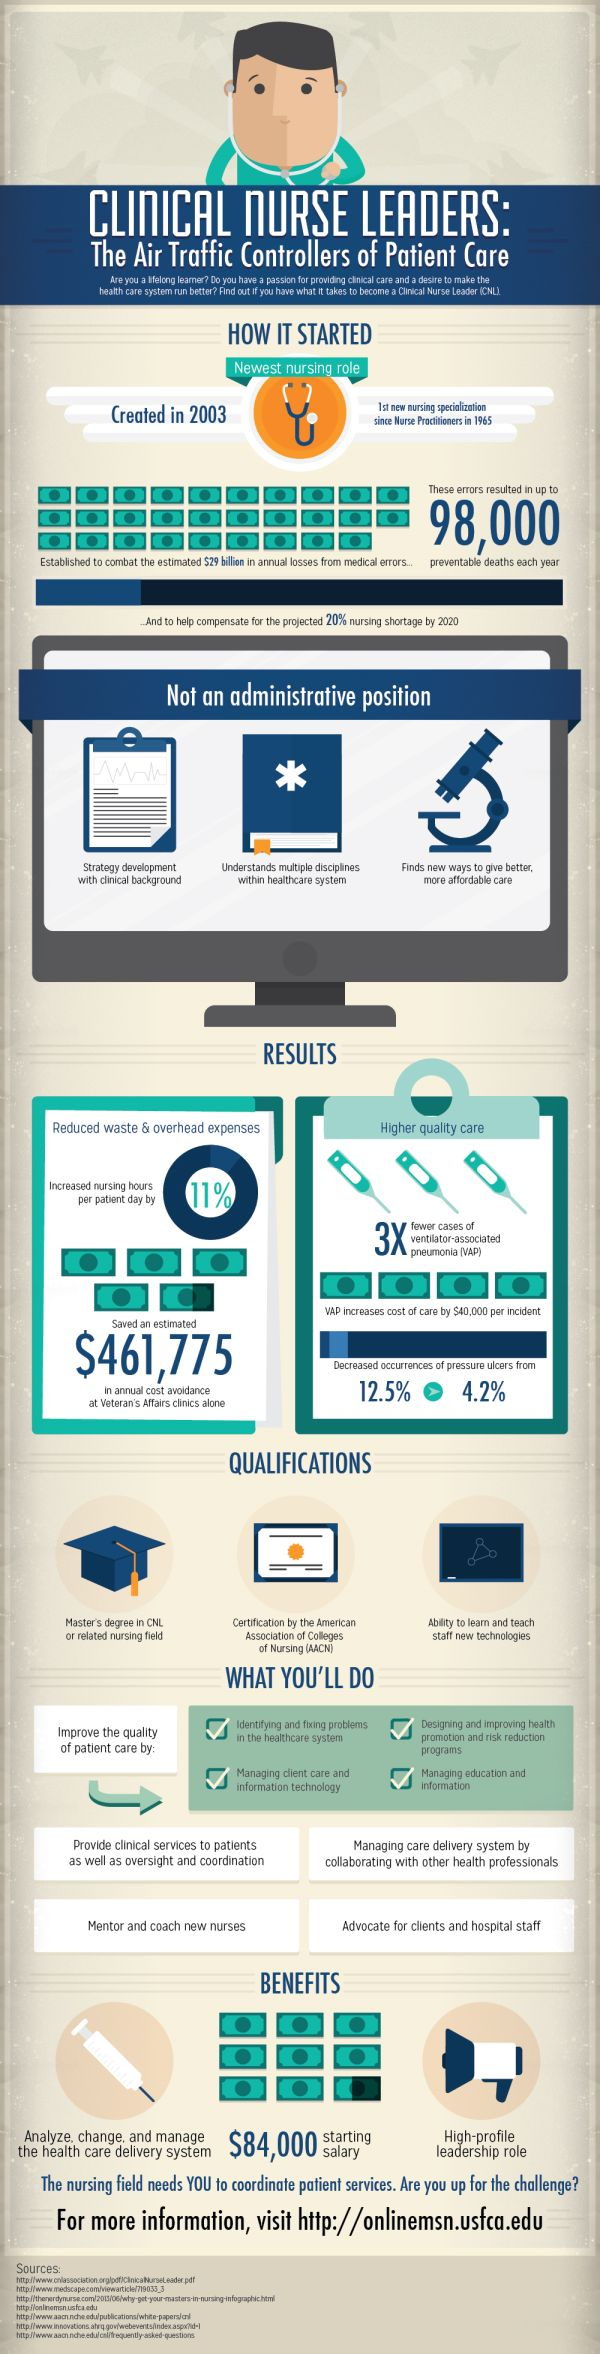 Clinical Nurse Leaders: The Air Traffic Controllers of Patient Care (infographic)